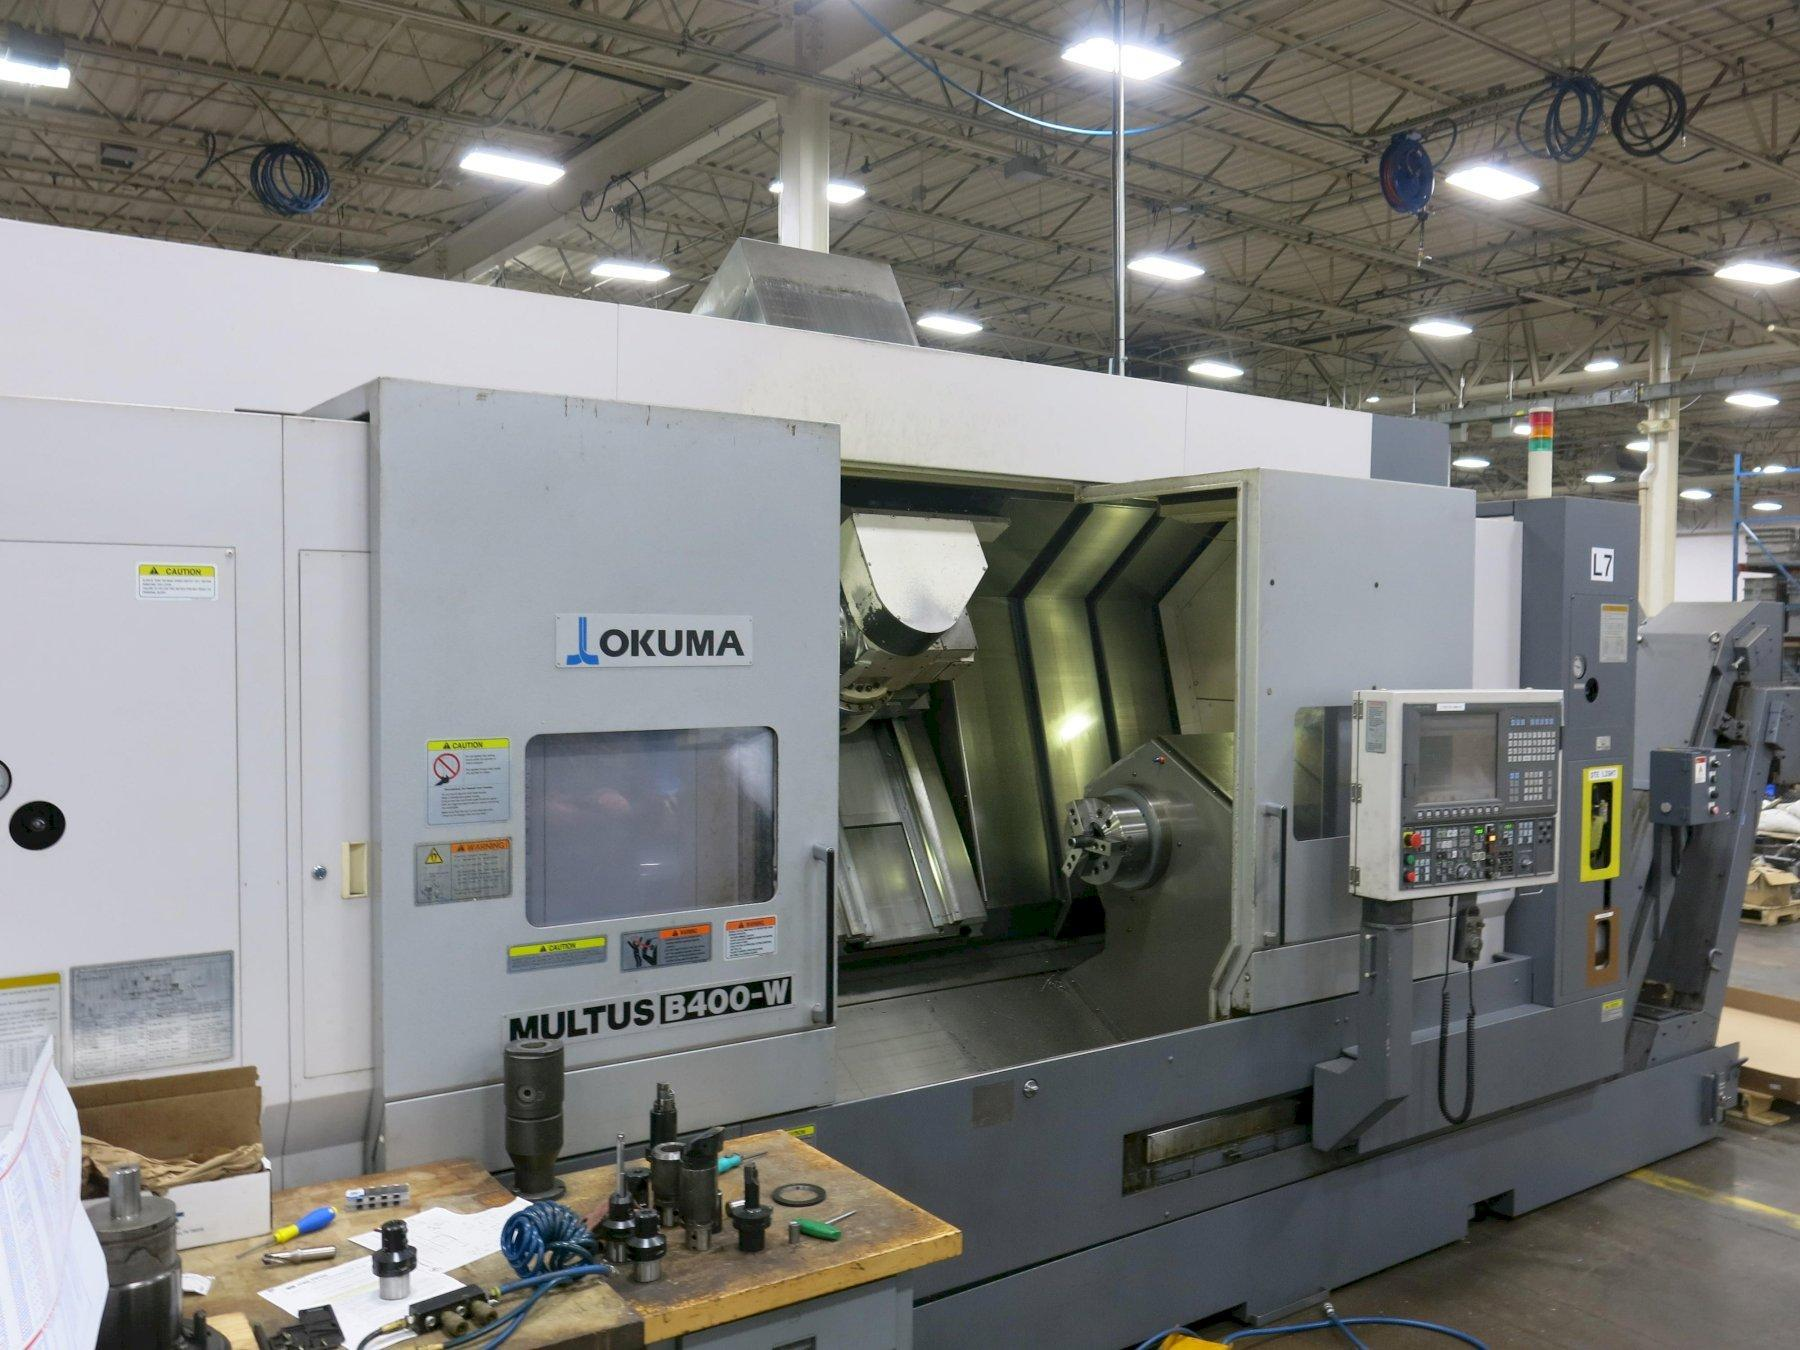 Okuma Multus B-400-W 1500 Mill Turn CNC Lathe, ONLY 2900 cutting hours, New 2011